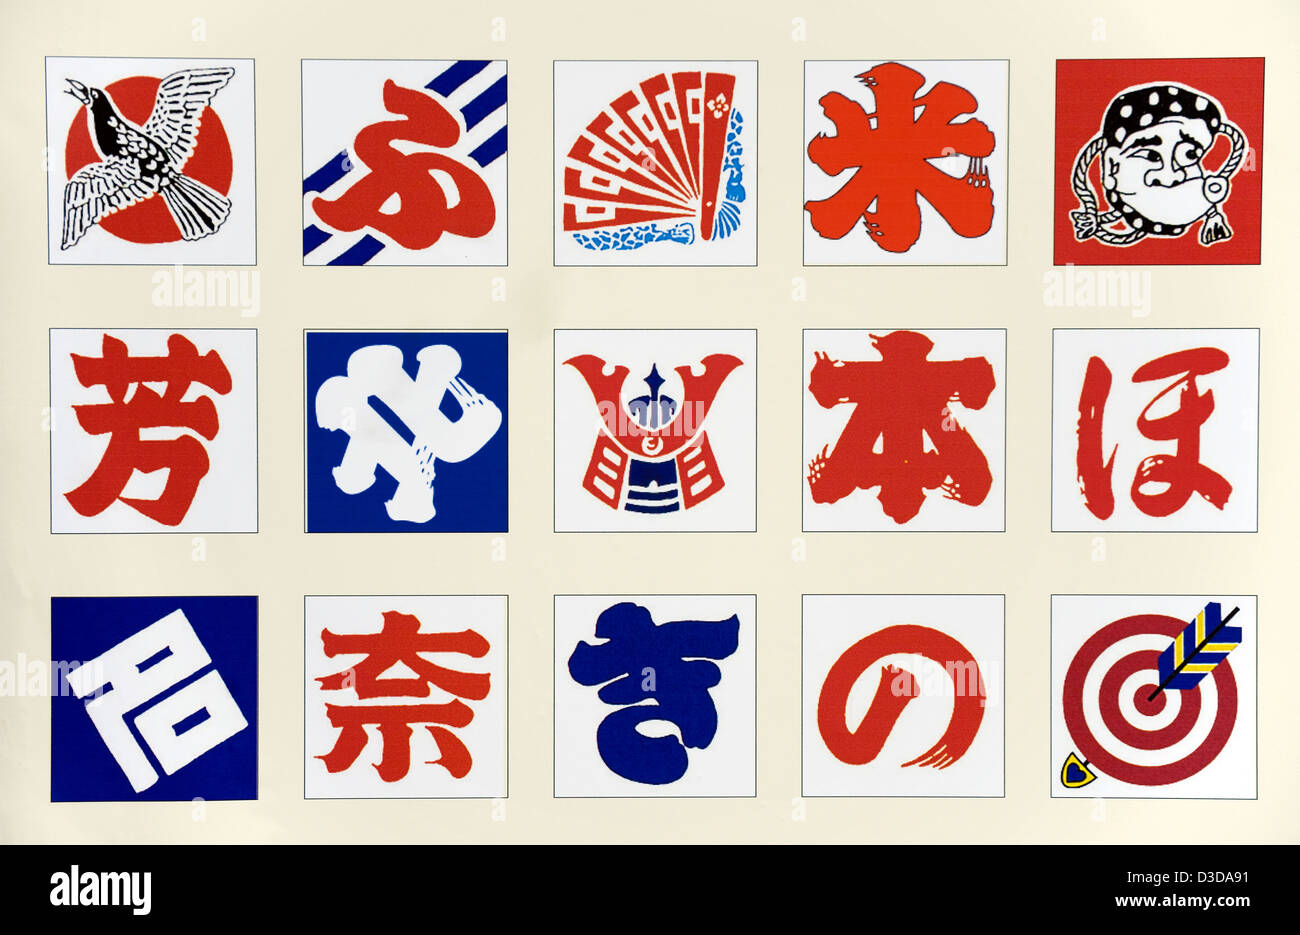 Chart showing small selection of Japanese kite designs appearing at Takoage Gassen, Kite Fighting Festival, in Hamamatsu, - Stock Image